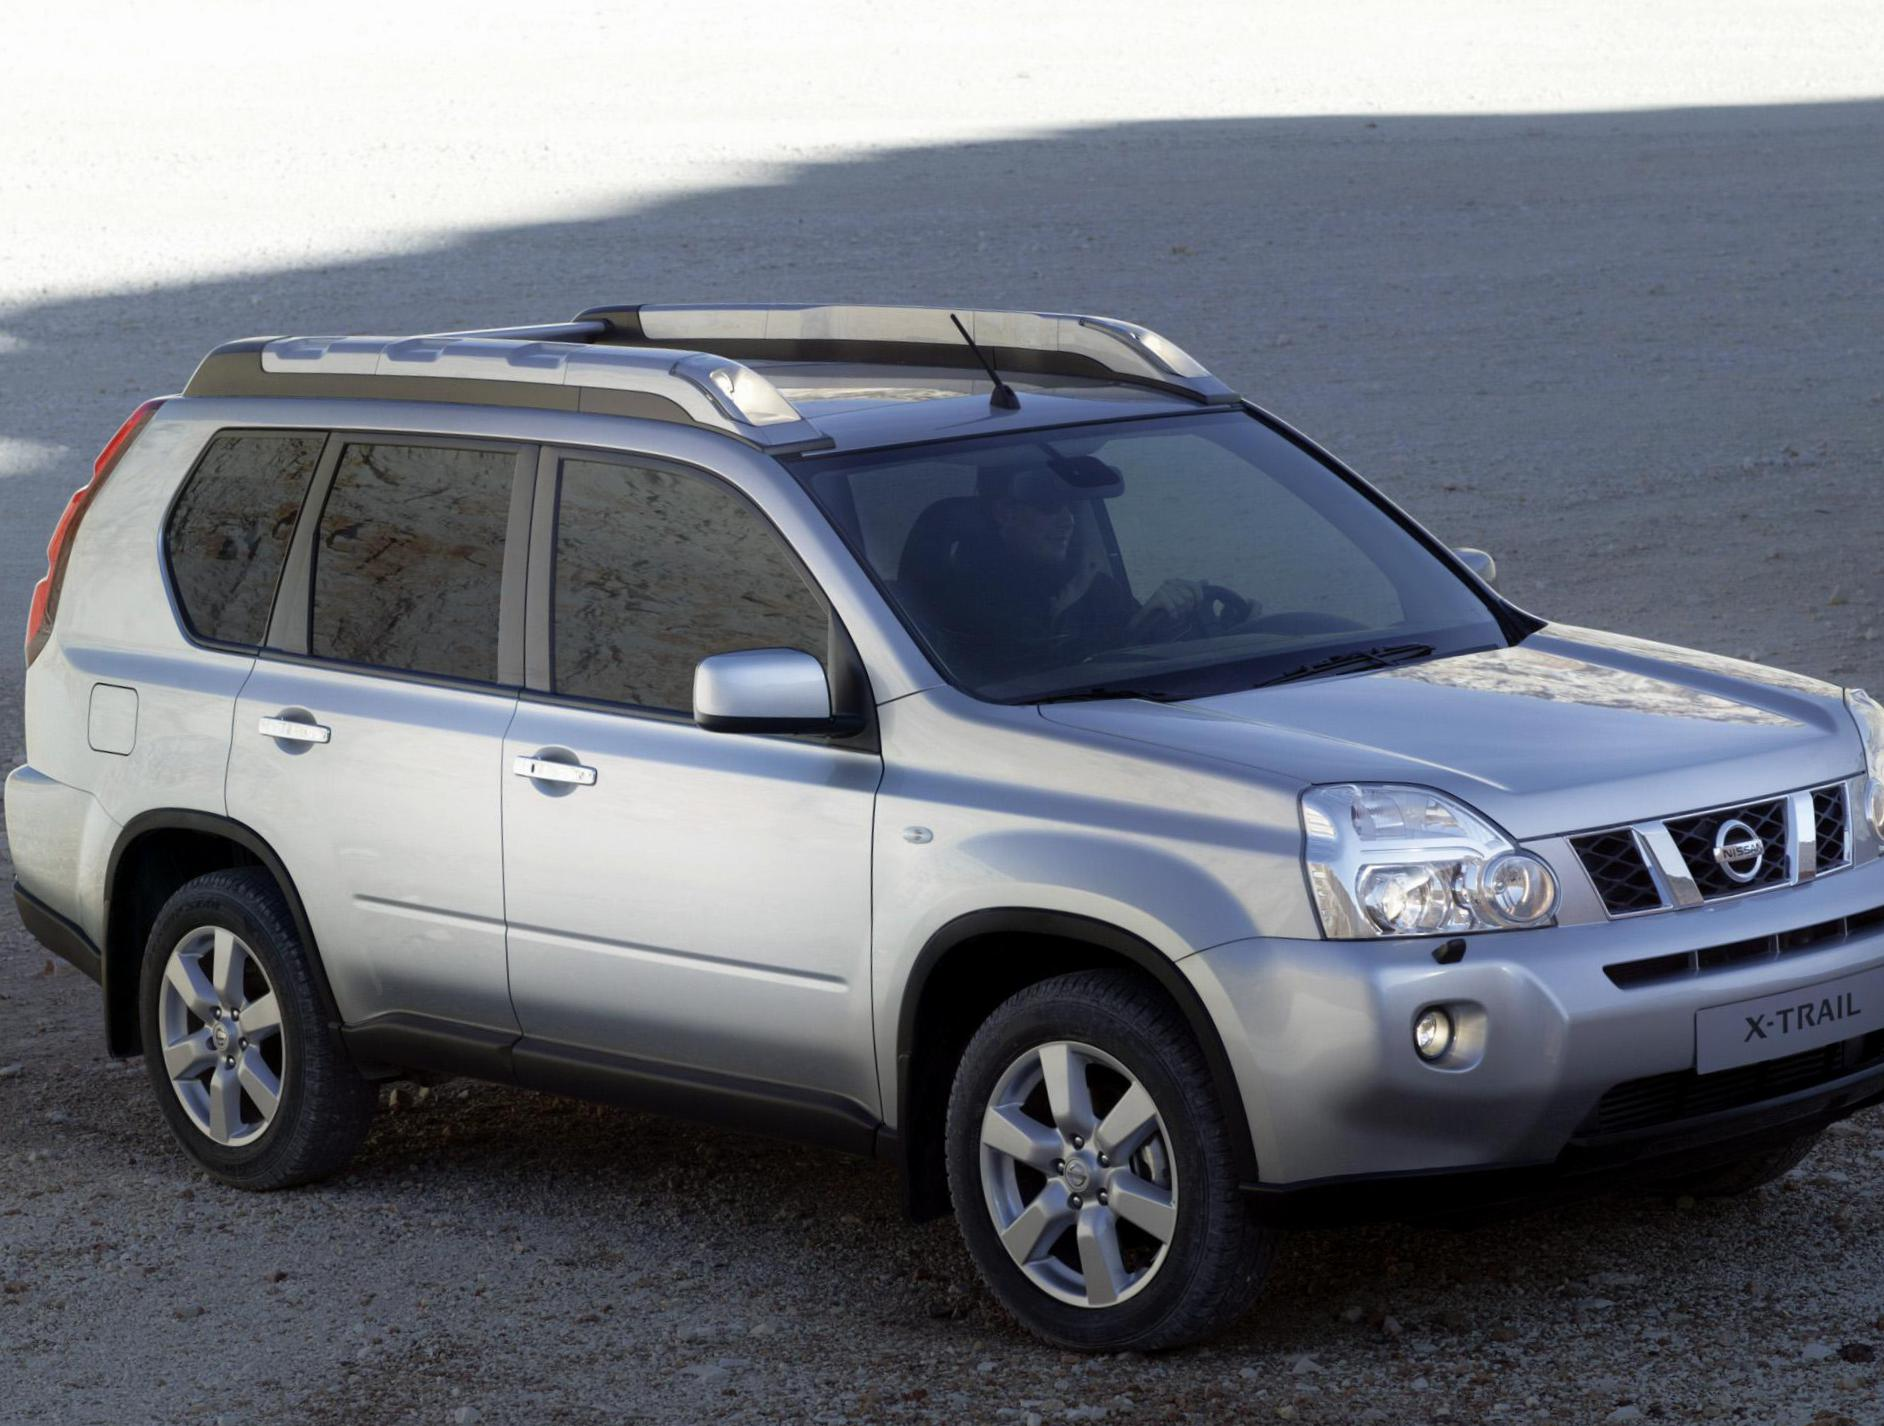 Nissan X-Trail Specifications 2014